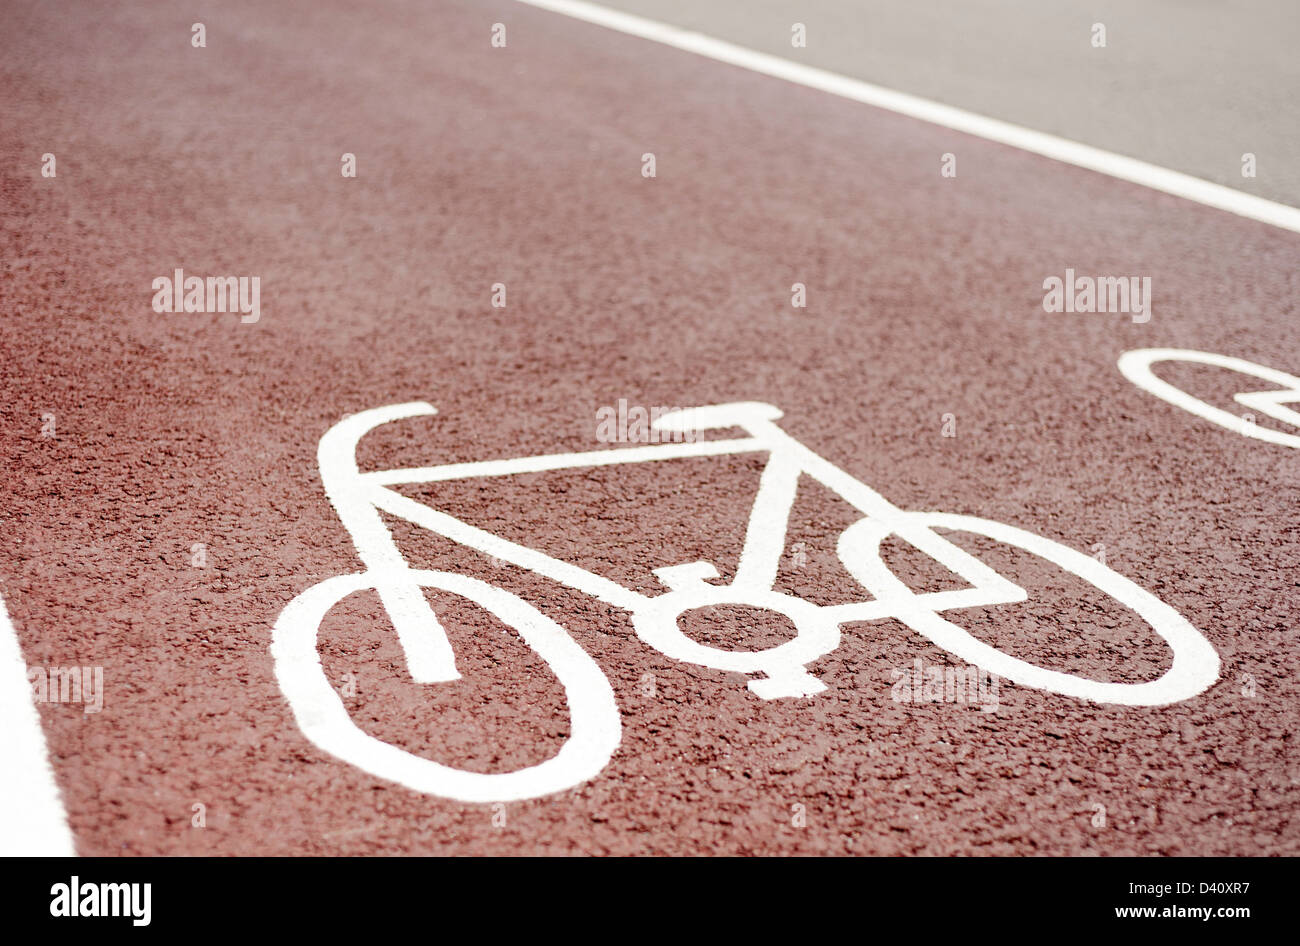 Designated cycle lane path symbol painted on a red asphalt road surface, UK - Stock Image